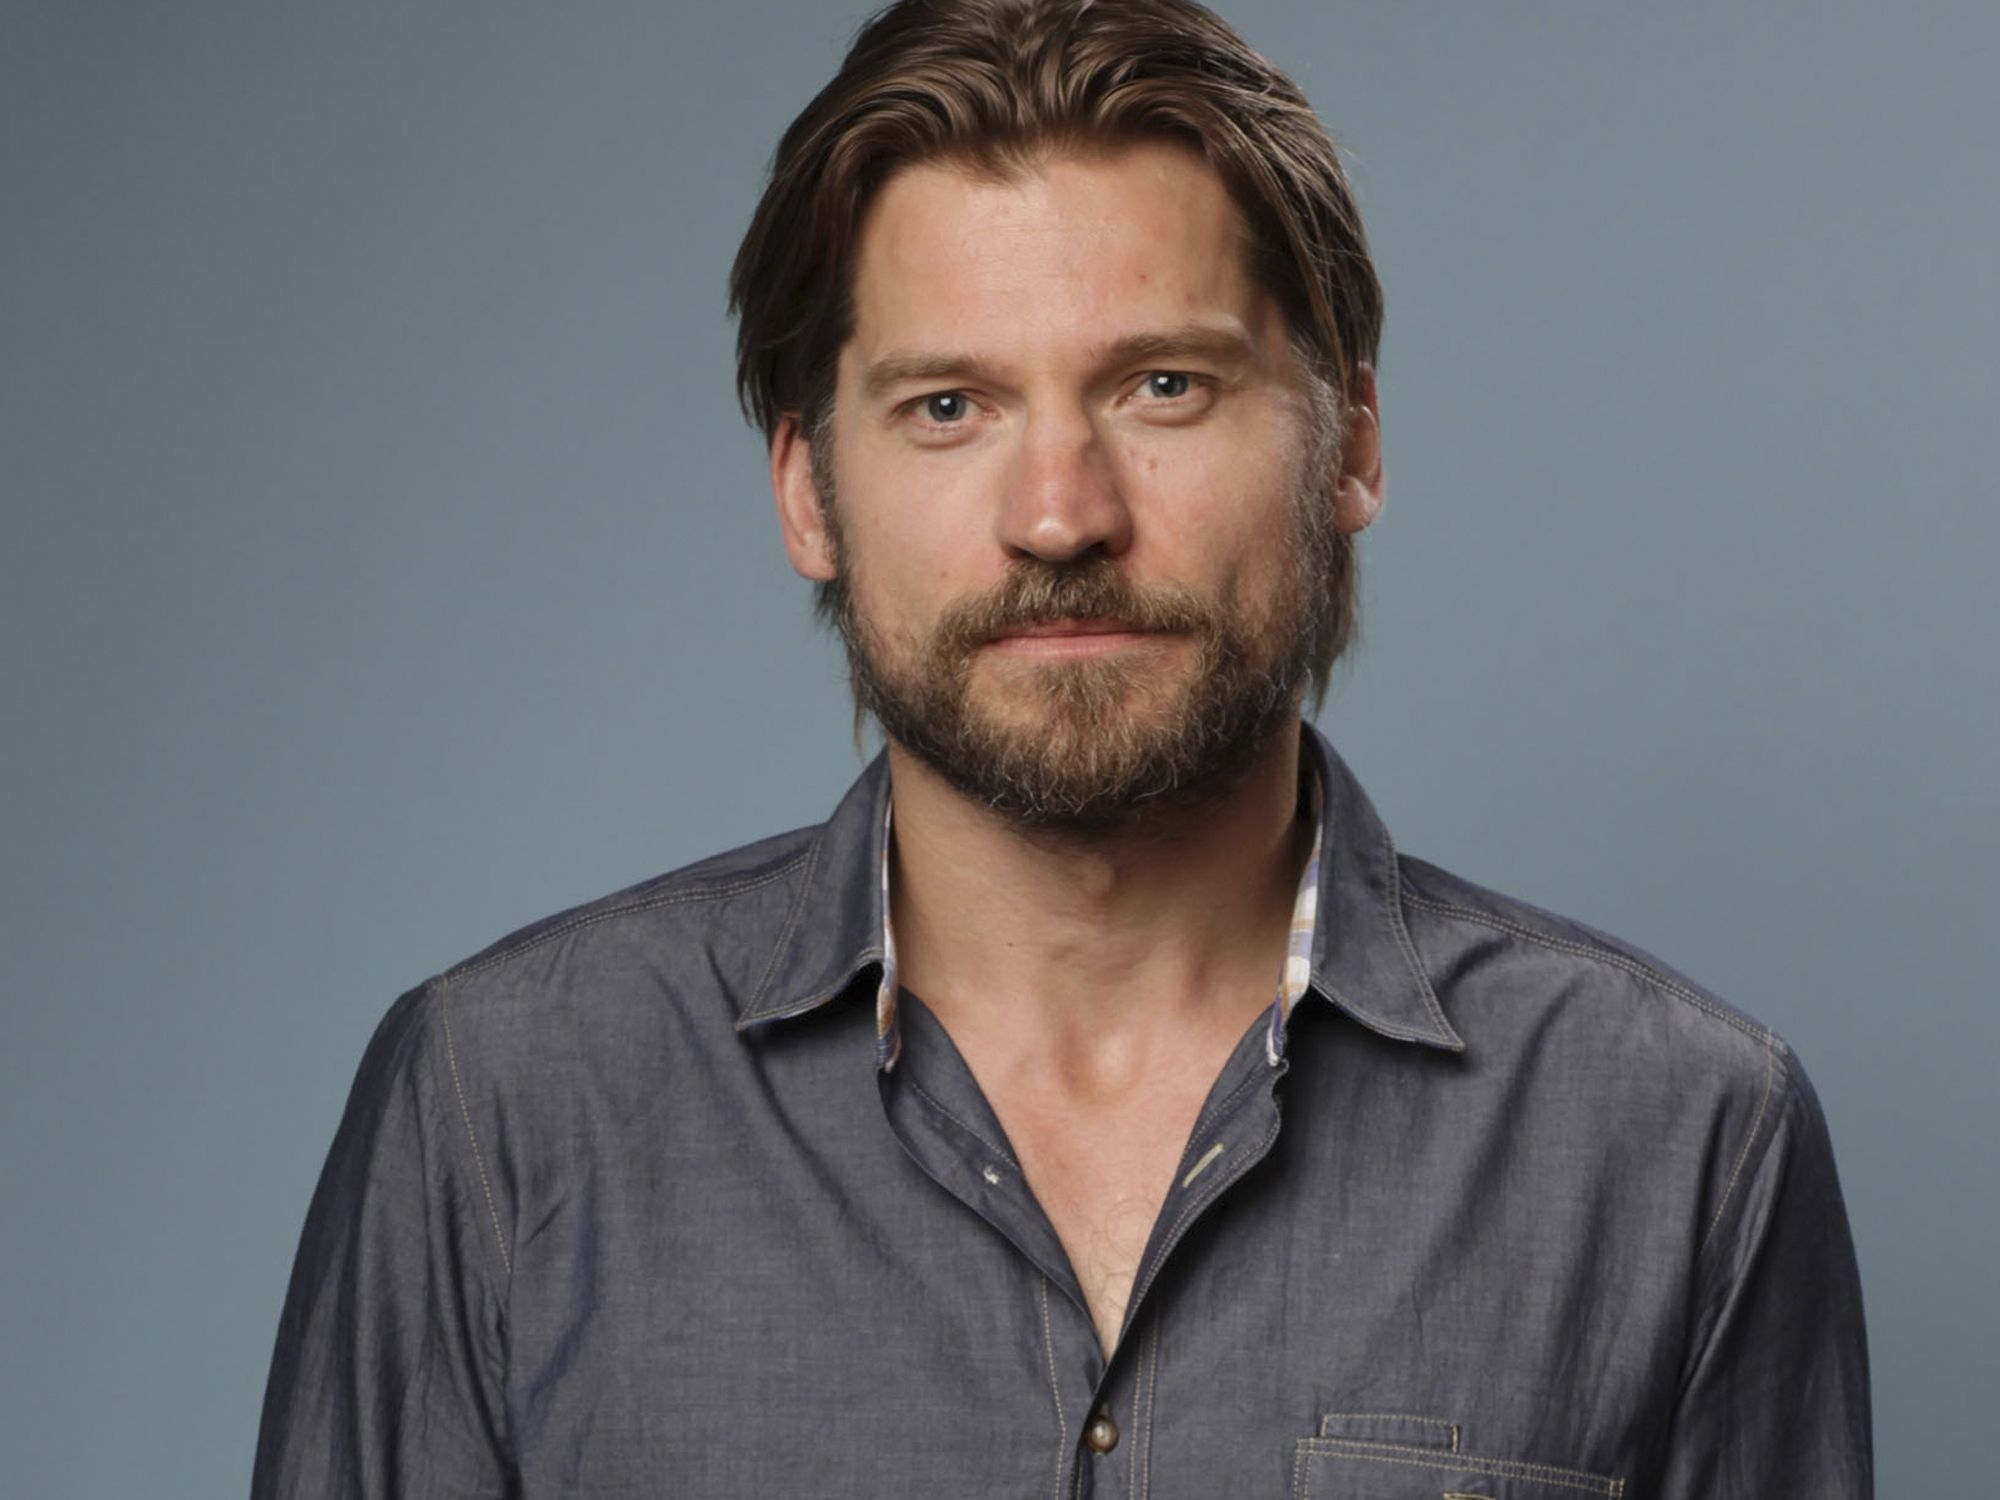 Nikolaj Coster-Waldau Danish Actor, Producer, Screenwriter